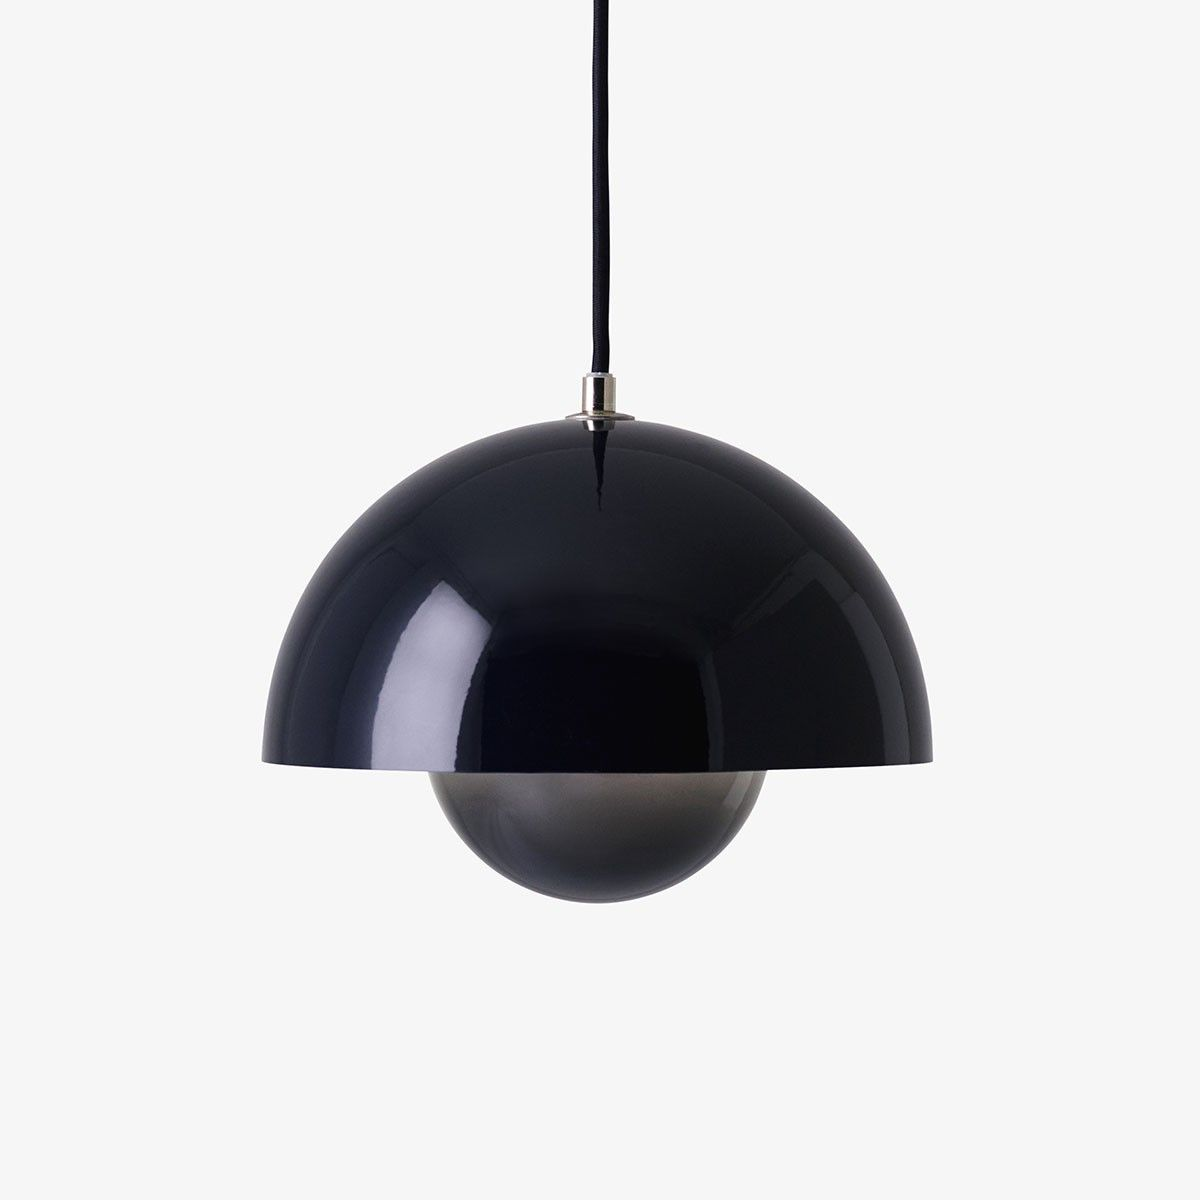 Suspension Flowerpot Bleu Noir By Verner Panton And Tradition Lampe Suspension Plafonnier Luminaire